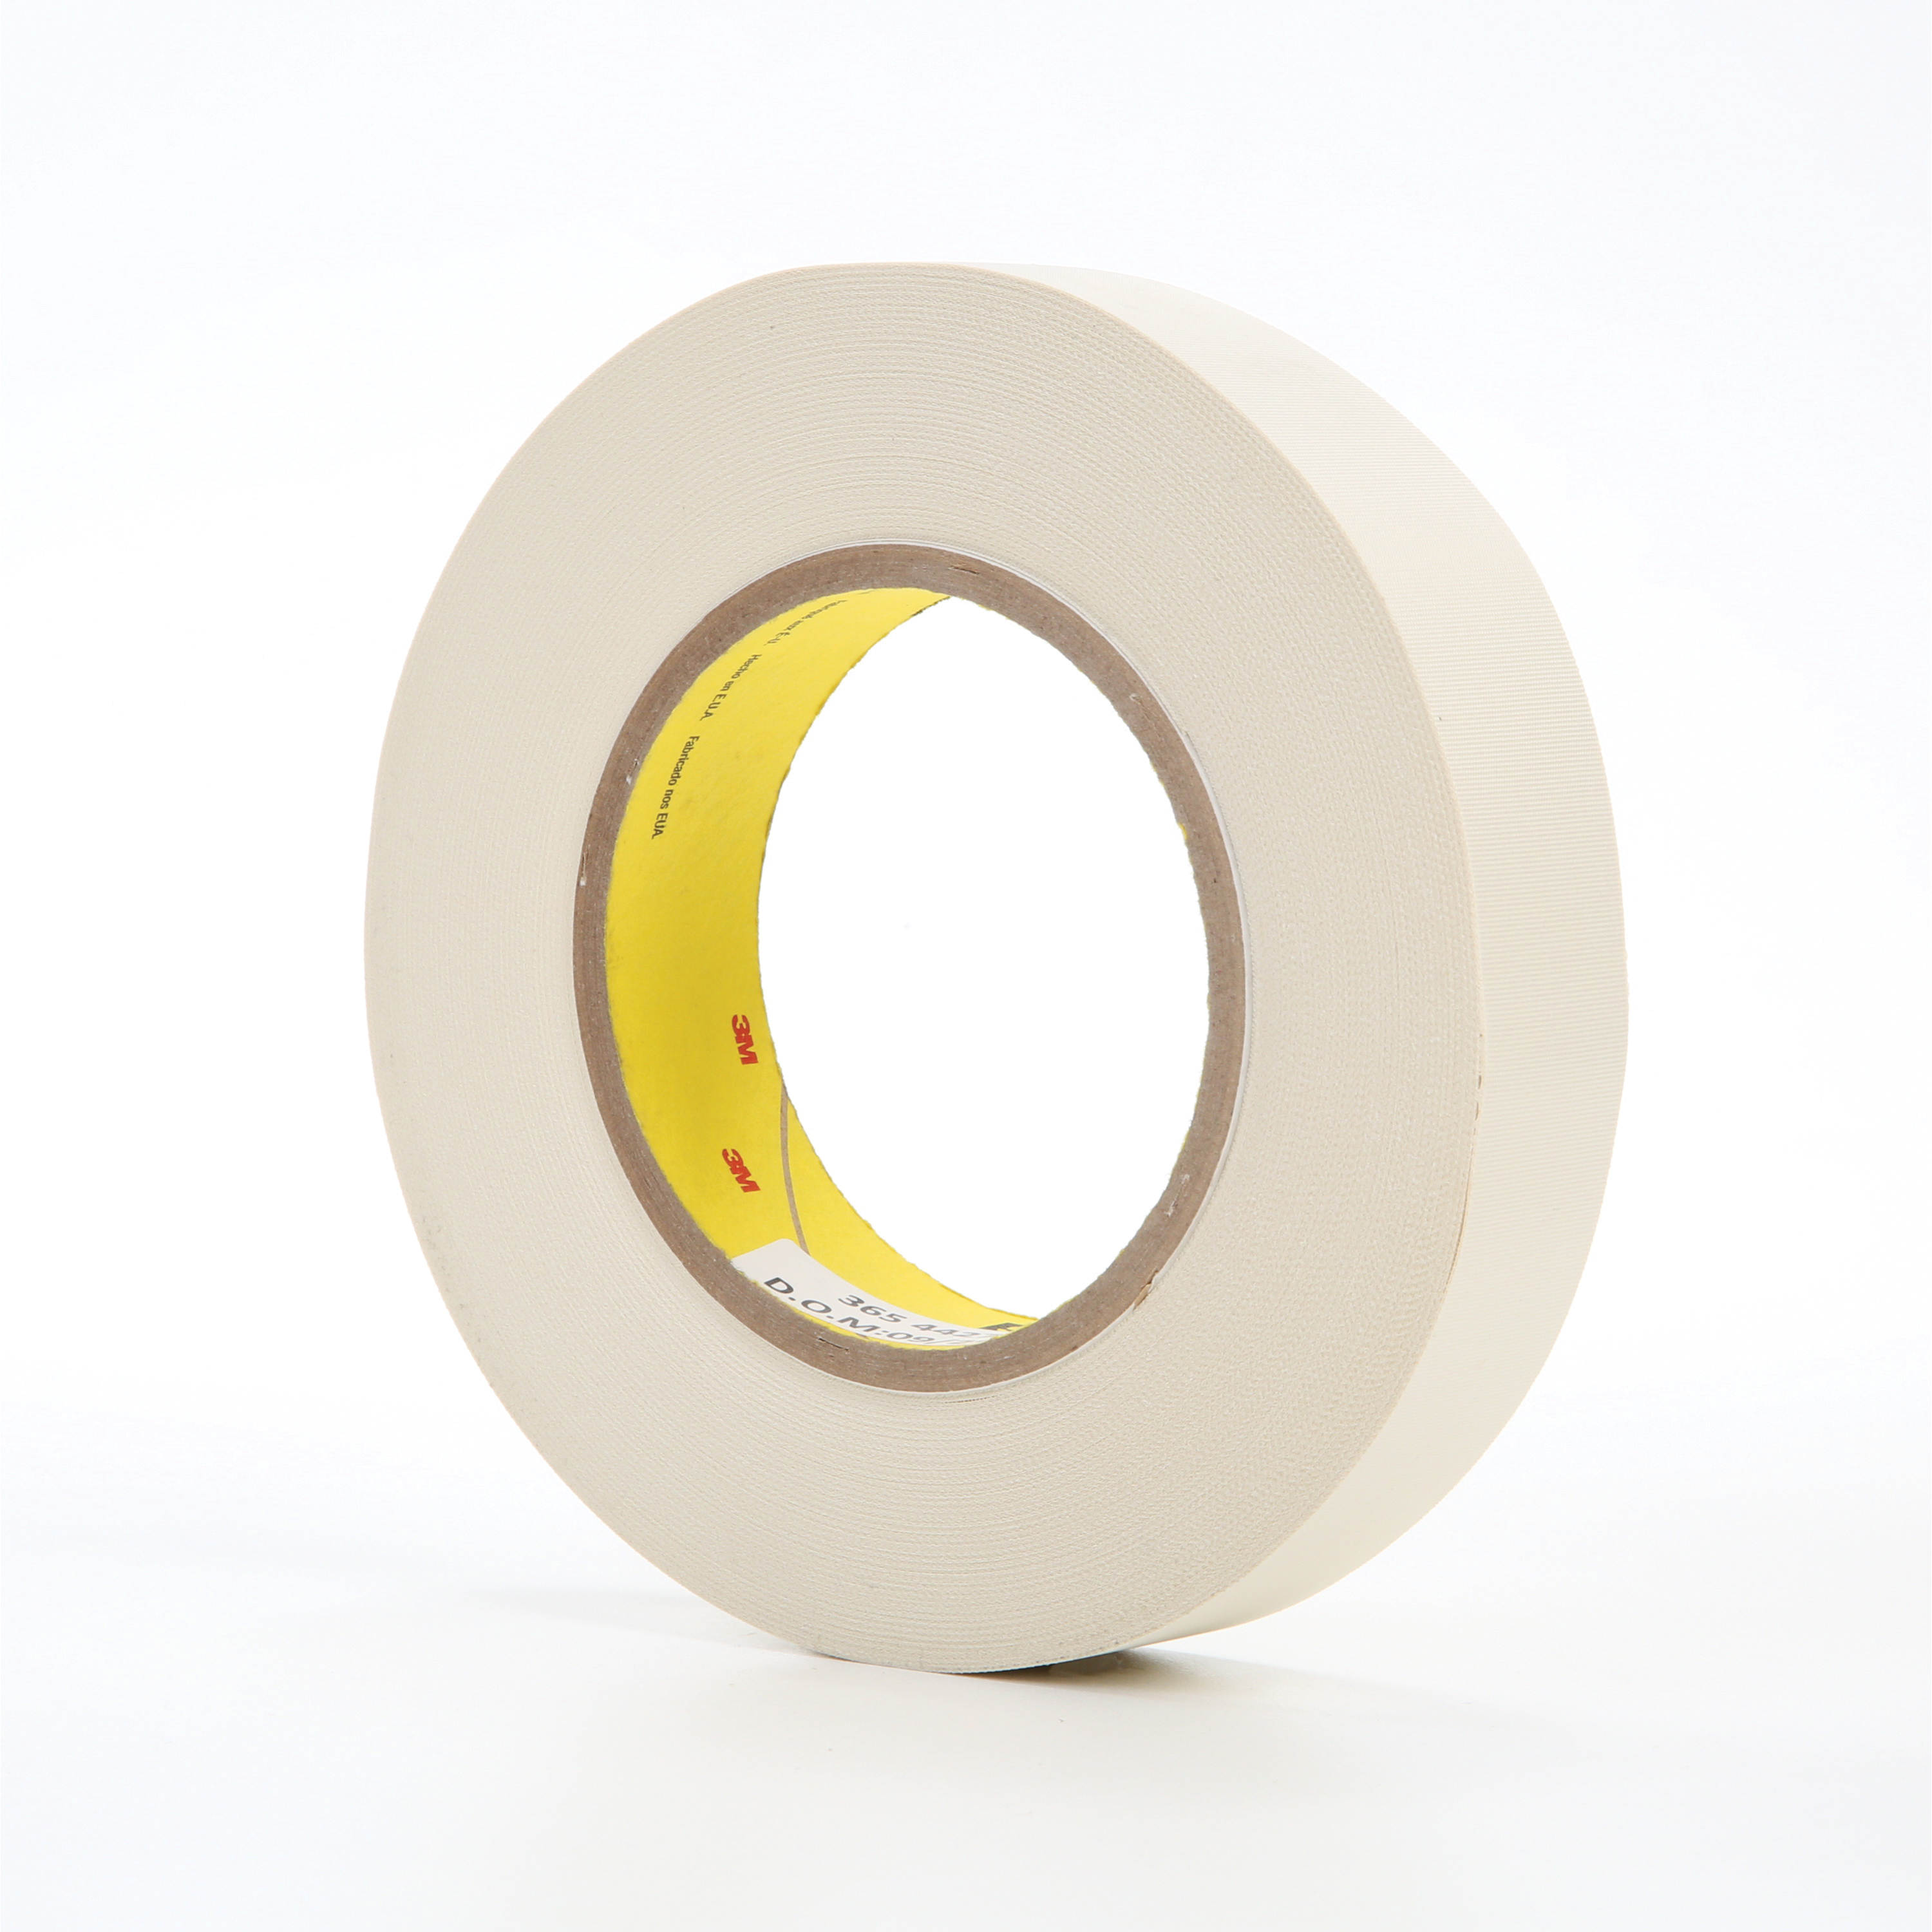 3M™ 021200-03020 Cloth Tape, 60 yd L x 1 in W, 8.3 mil THK, Thermoset Rubber Resin Adhesive, Glass Cloth Backing, White